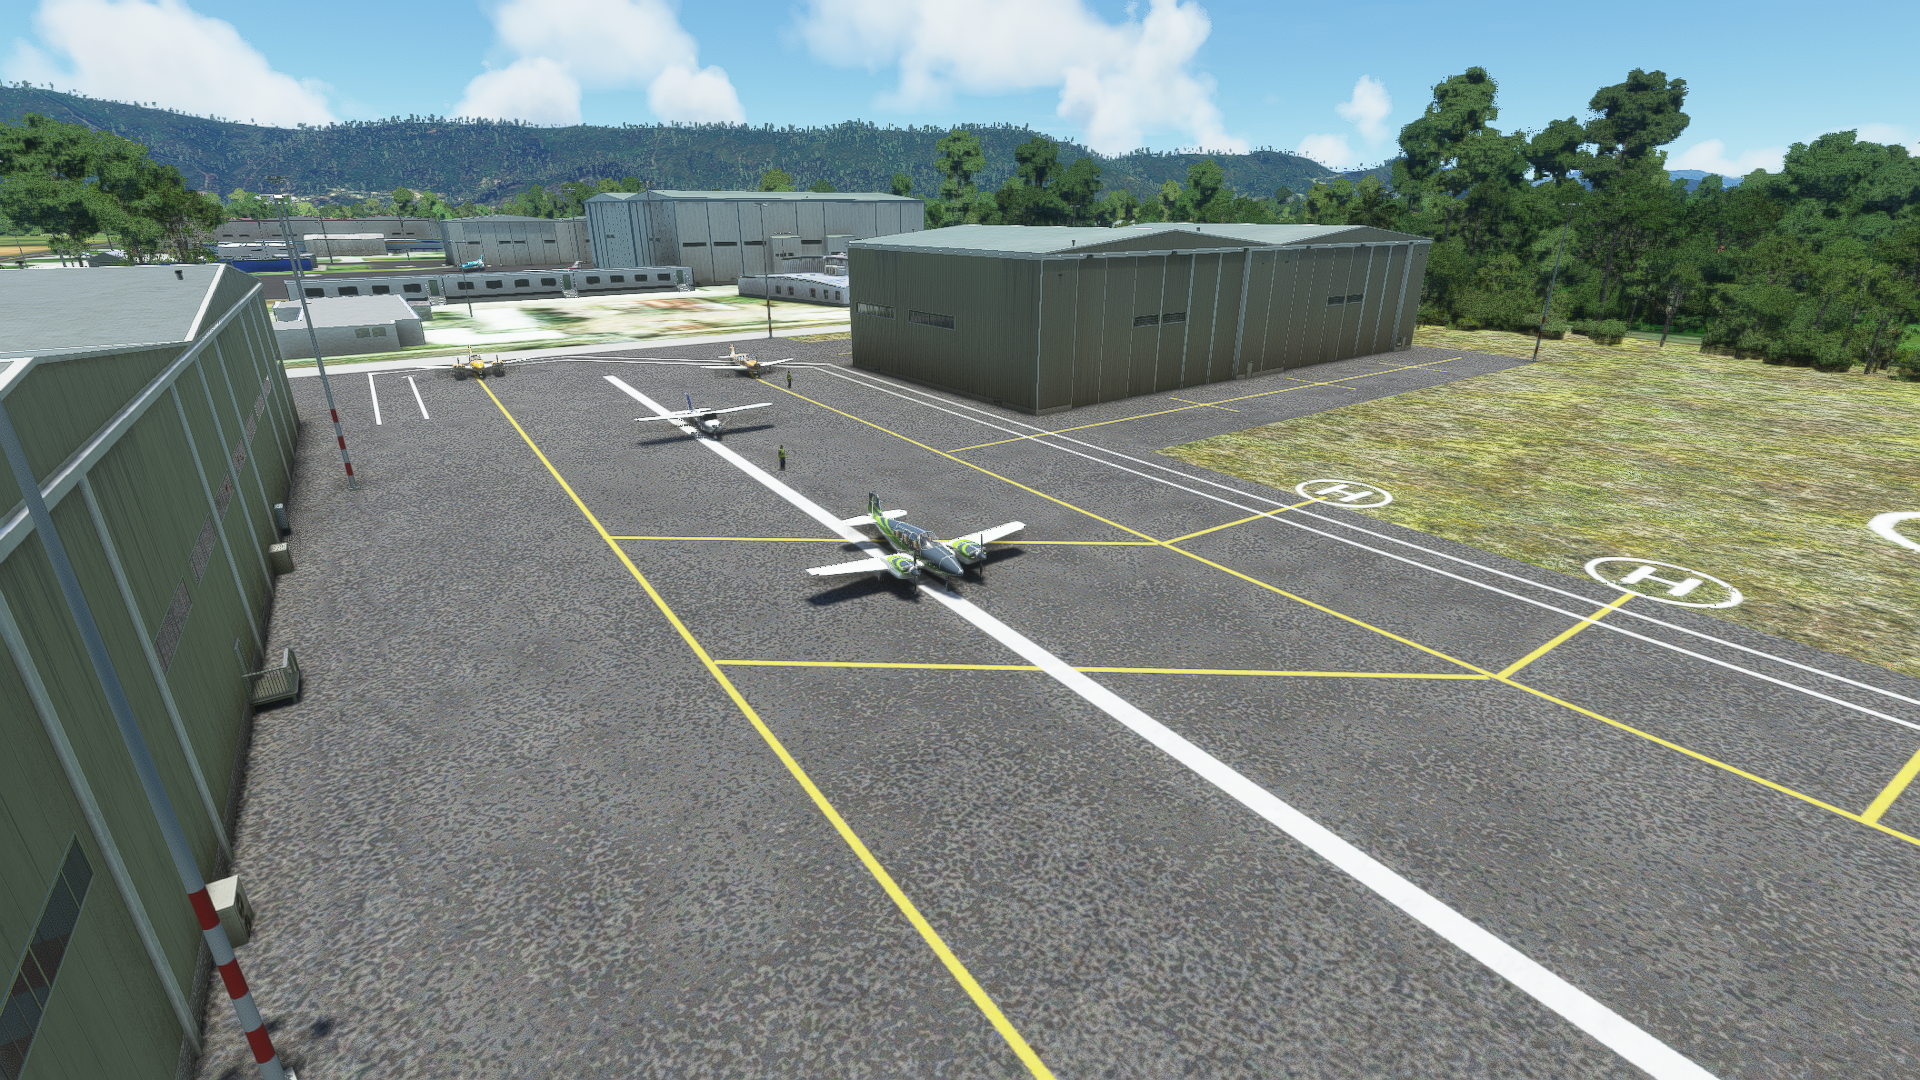 PACHILABS - GUAYMARAL AIRPORT SKGY MSFS